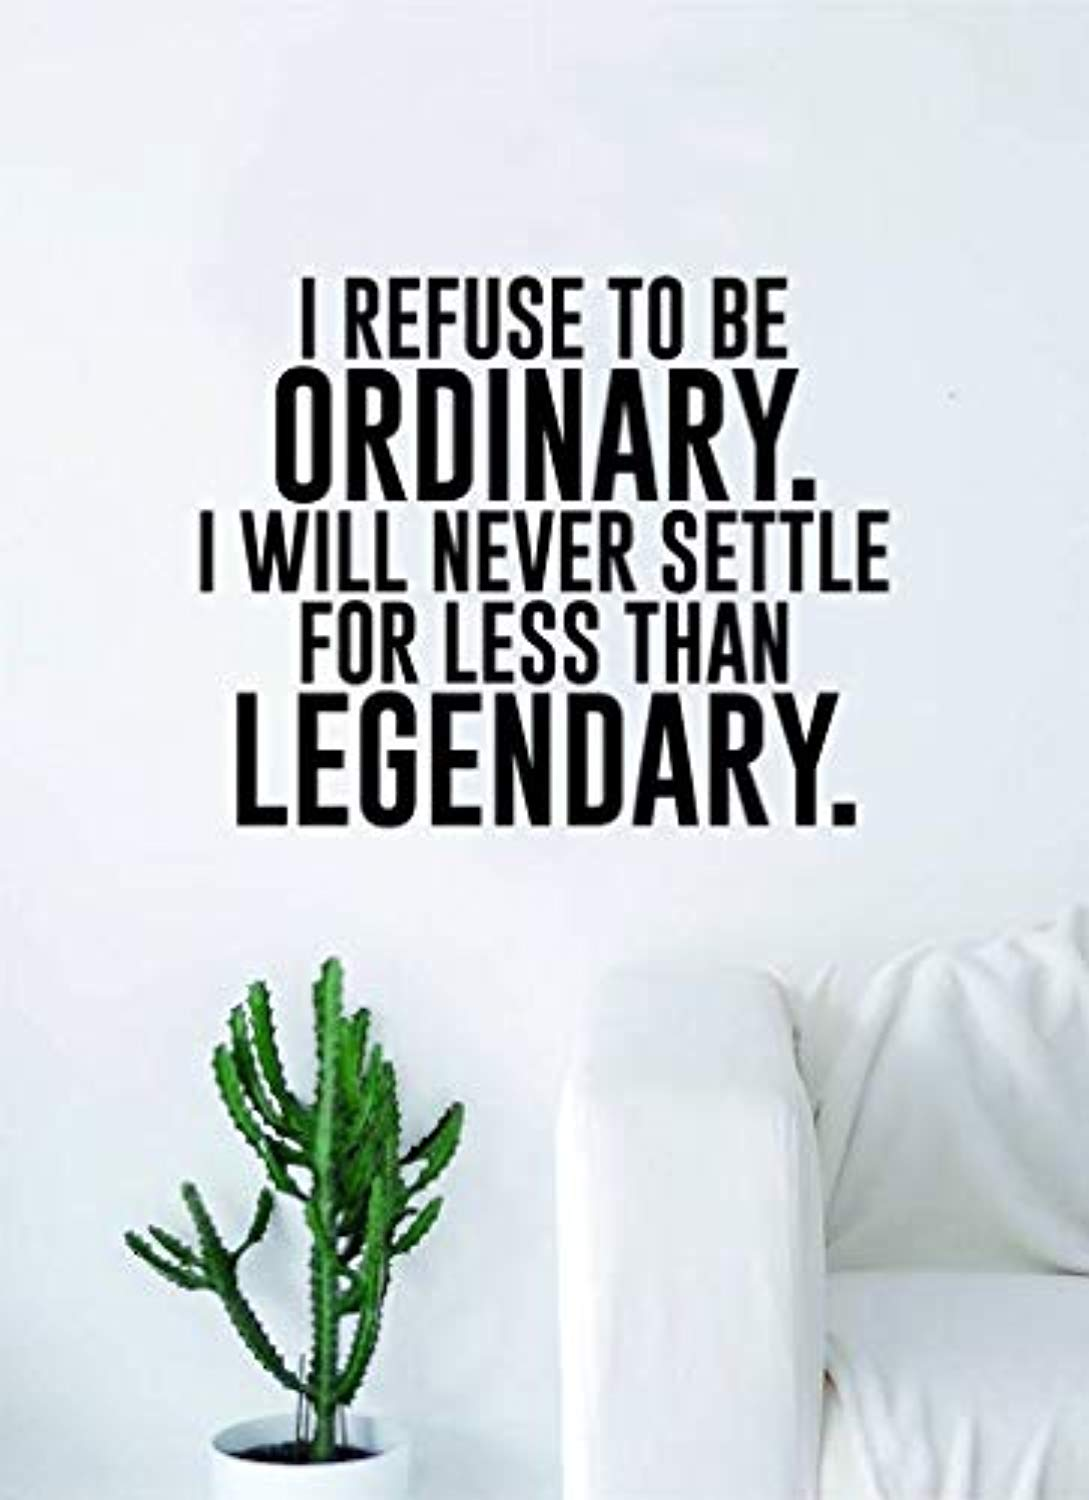 Amazon Com I Refuse To Be Ordinary Decoration Art Bedroom Living Room Quote Gym Legendary Inspirational Wall Decals Decor Vinyl Sticker Sk10767 W27 H22 Baby